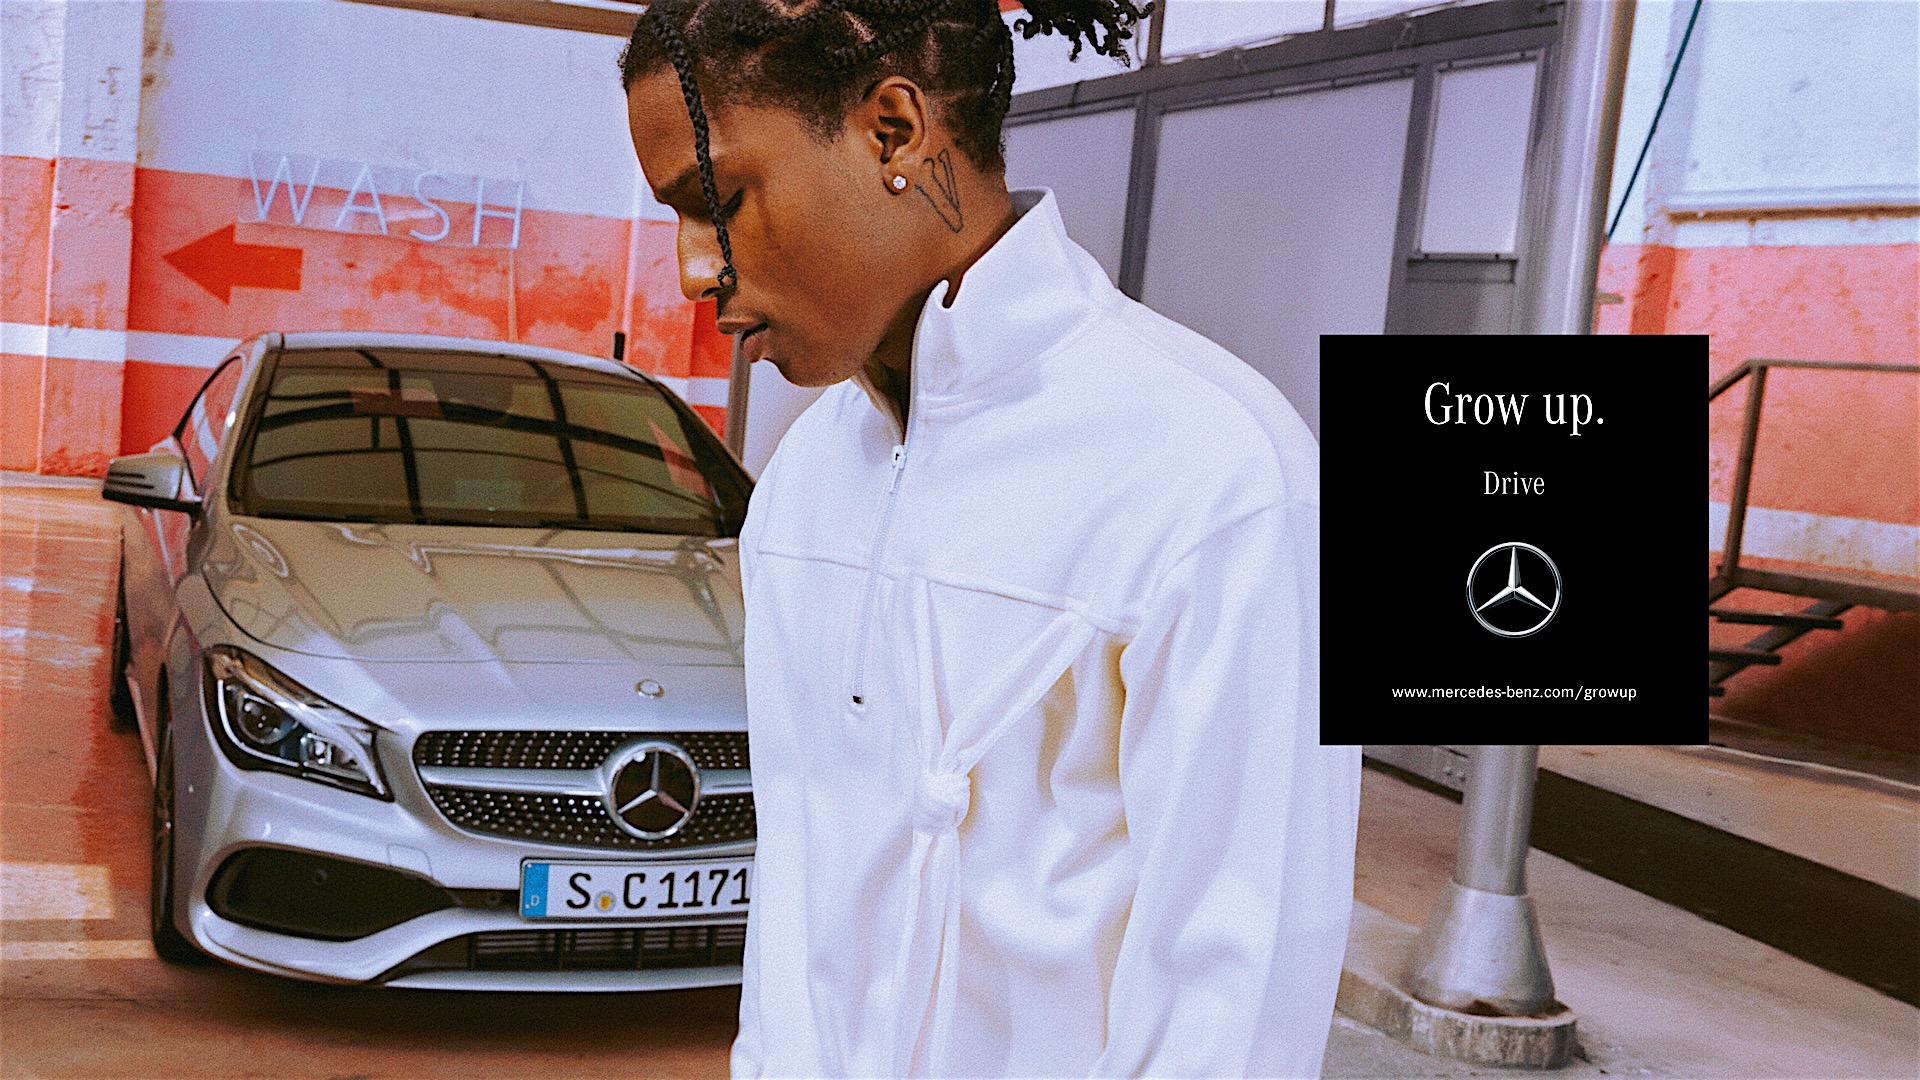 A$AP Rocky Pays Tribute to Slain Brother in Mercedes-Benz Campaign